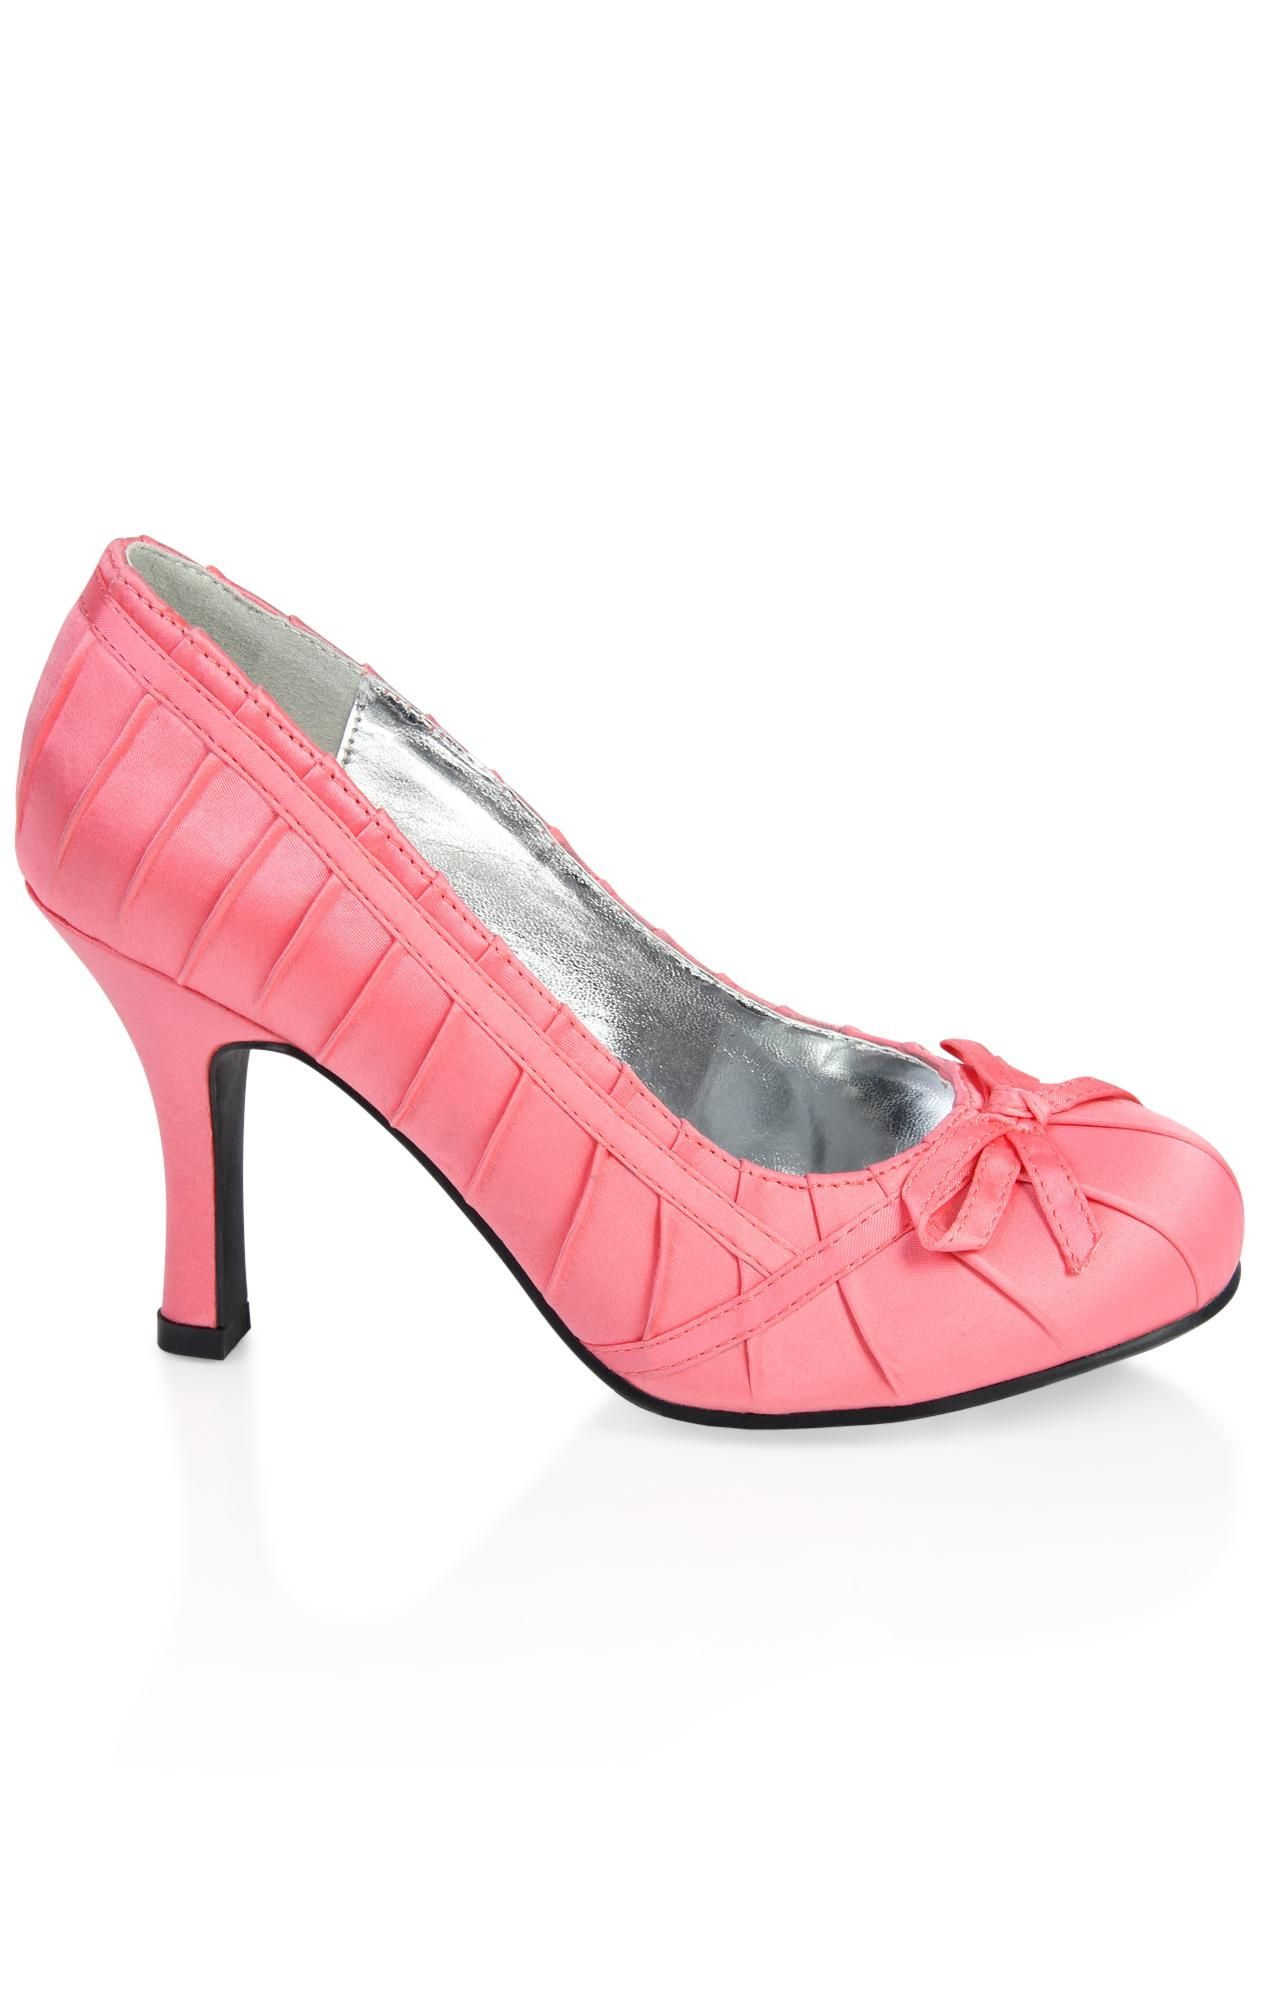 pleated satin high heel with bow (With images) Heels